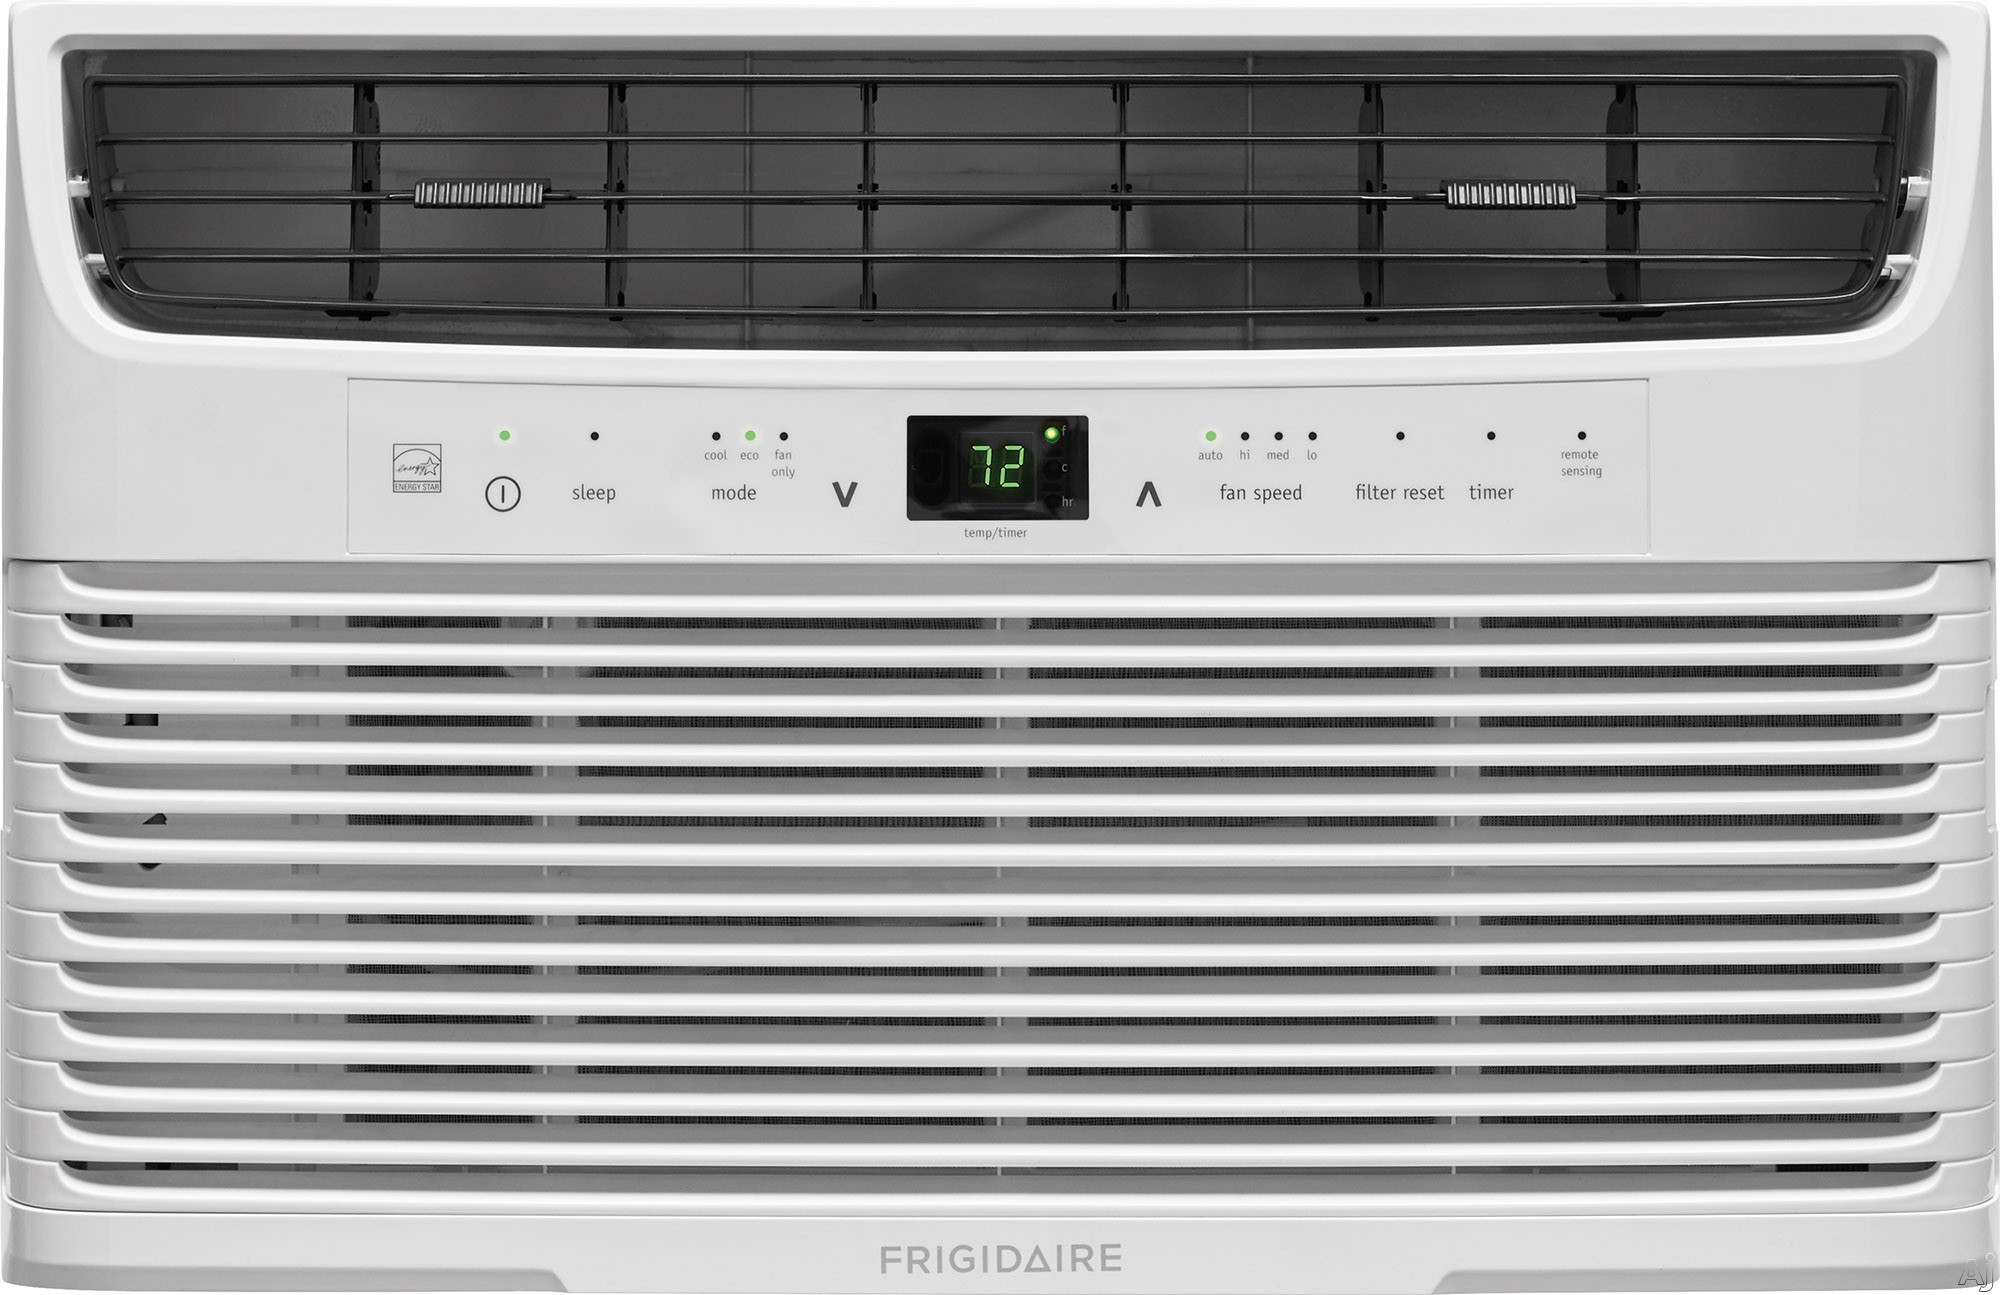 Frigidaire FFRE0633U1 6,000 BTU Room Air Conditioner with Effortless™ Temperature Control, Programmable 24-Hour Timer, Effortless™ Clean Filter, SpaceWise® Adjustable Side Panels, Effor